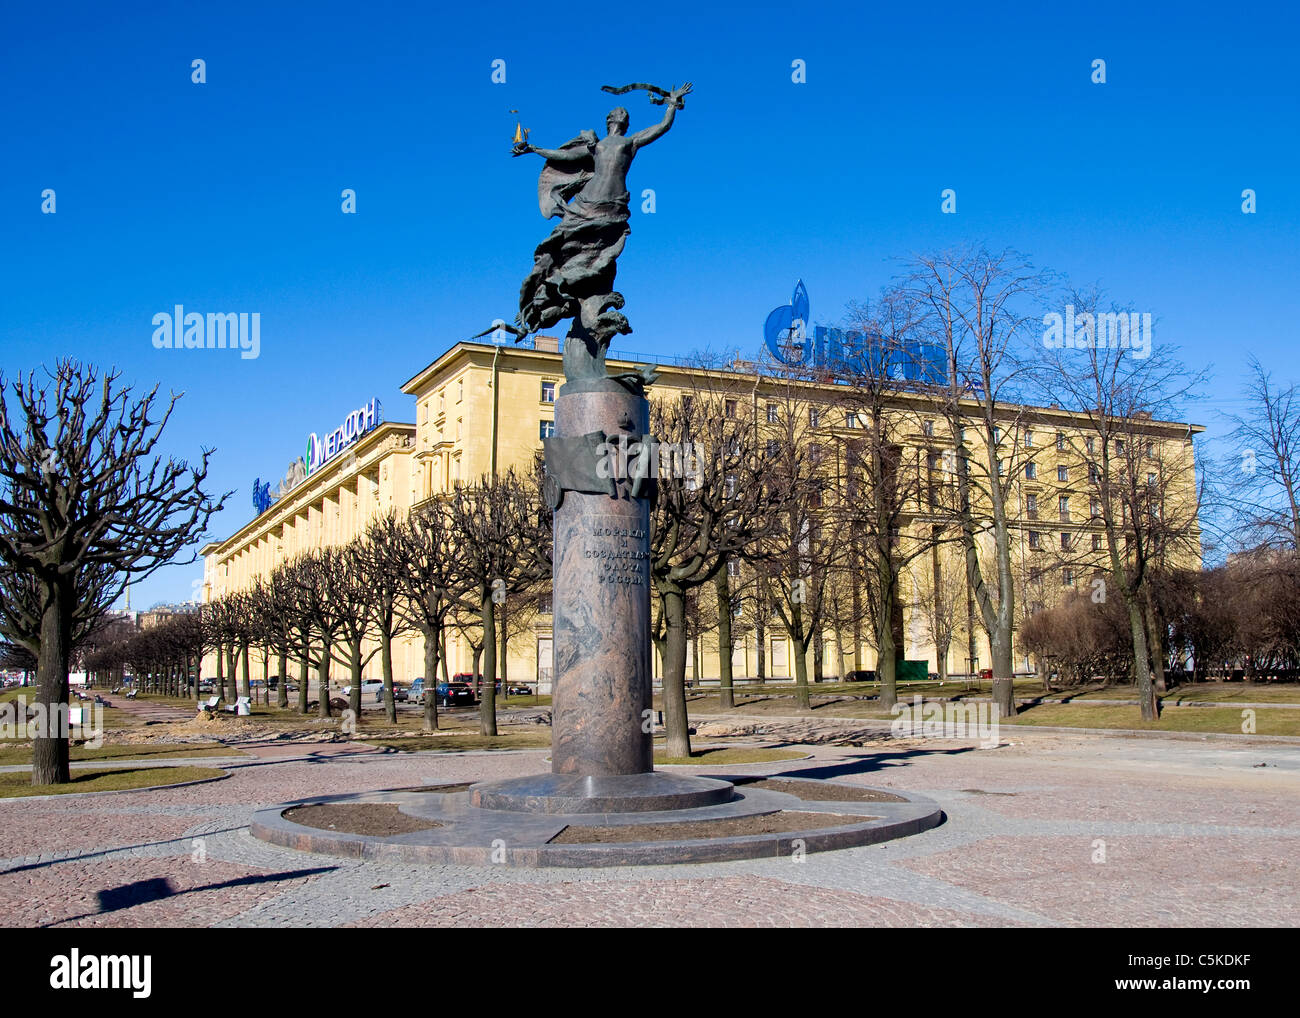 Statue Commemorating Sailors, St Petersburg, Russia - Stock Image